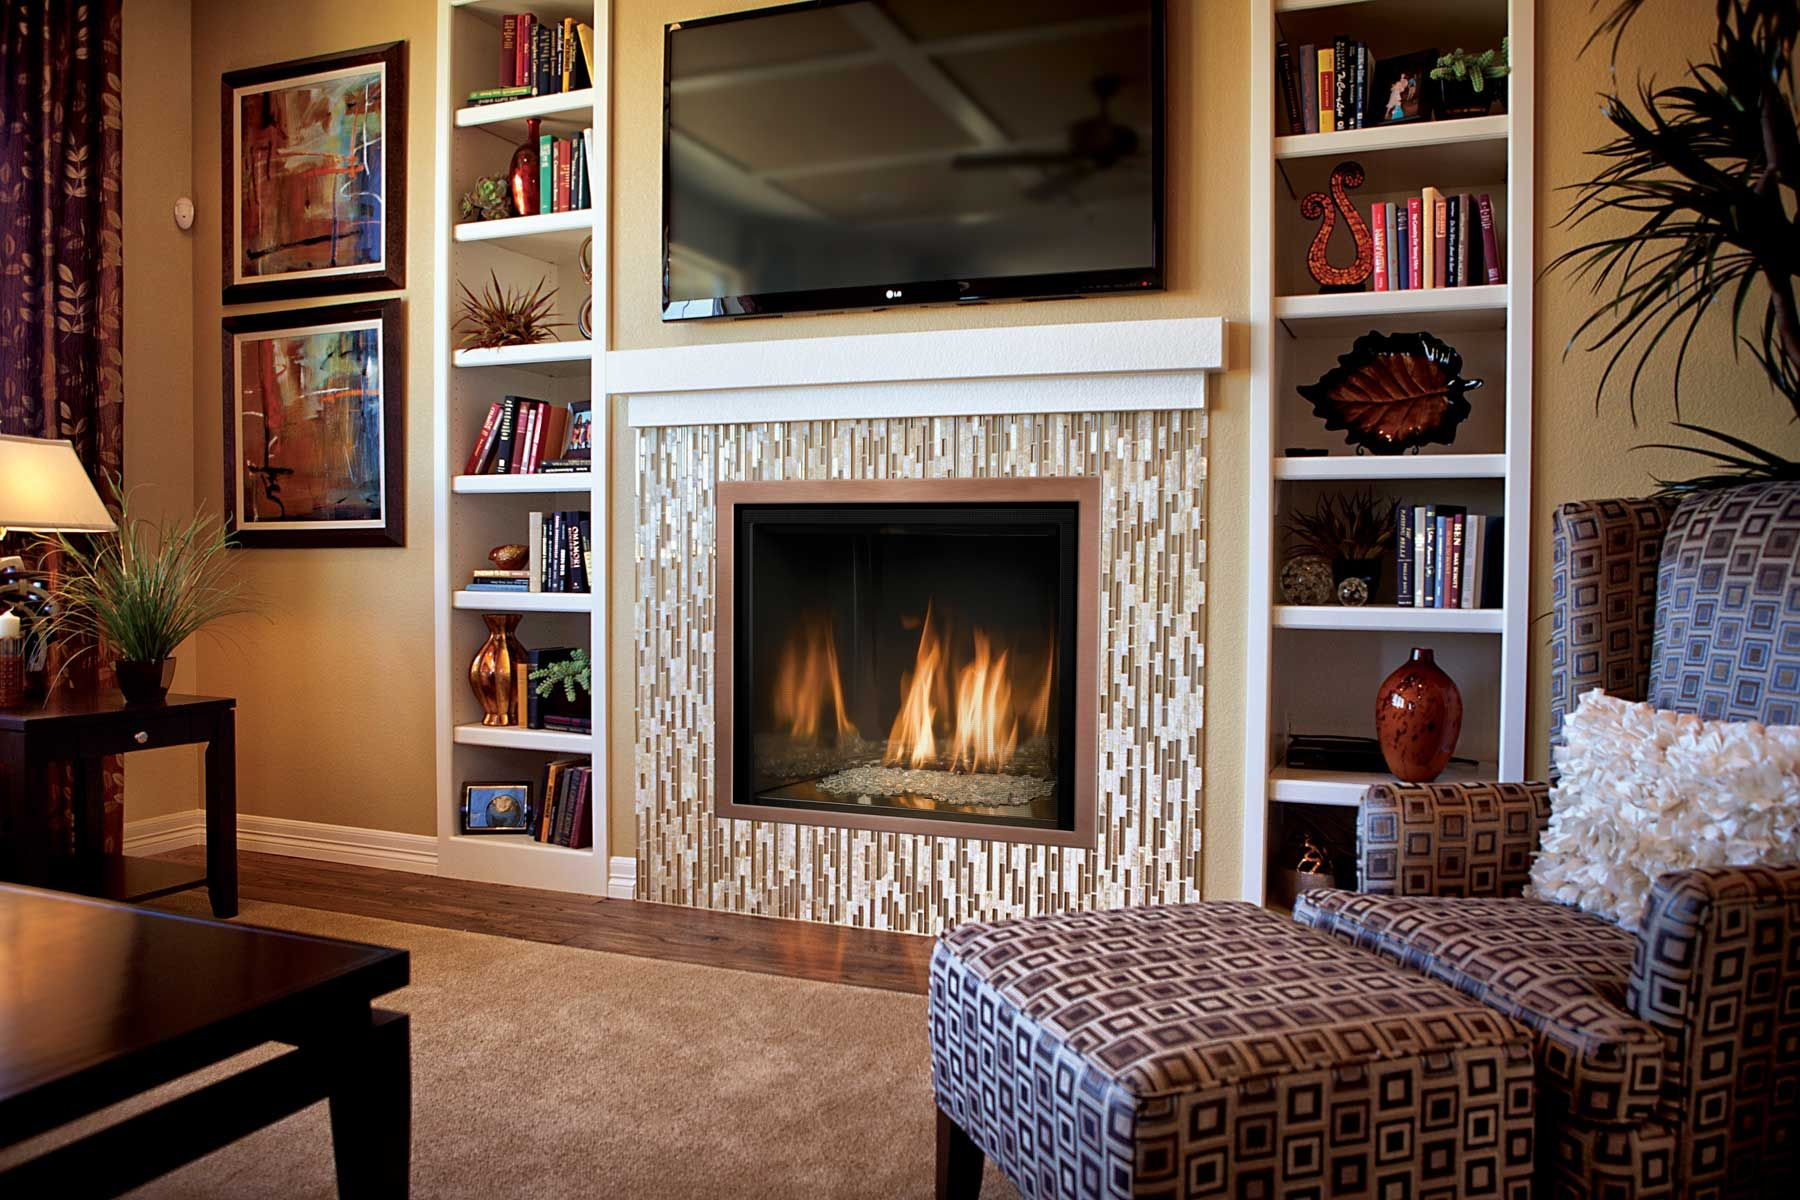 tile fireplaces design ideas tiled fireplace ideas painted brick 17 best images about housefireplace on pinterestrustic - Fireplace Styles And Design Ideas